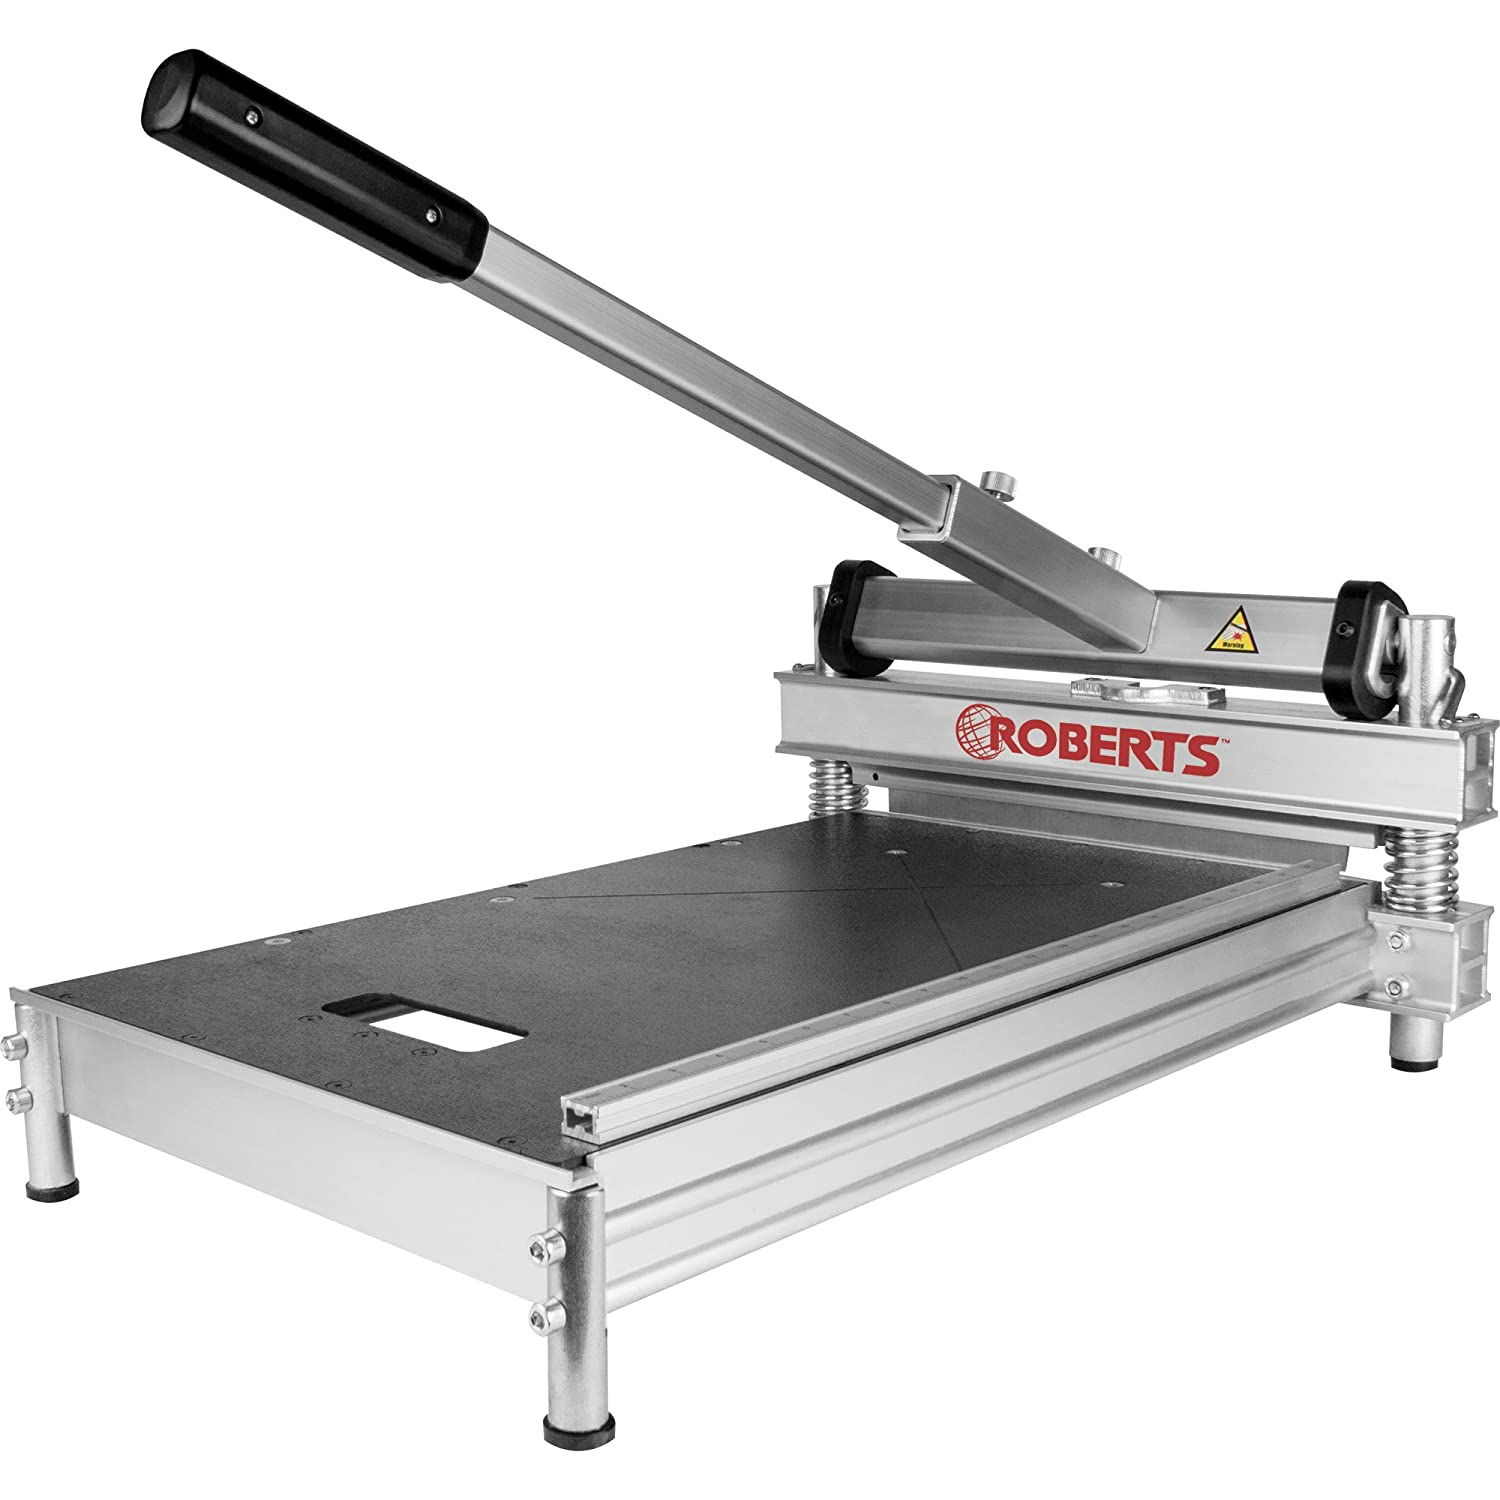 Roberts 10-64 13-Inch Pro Flooring Cutter, Silver, black